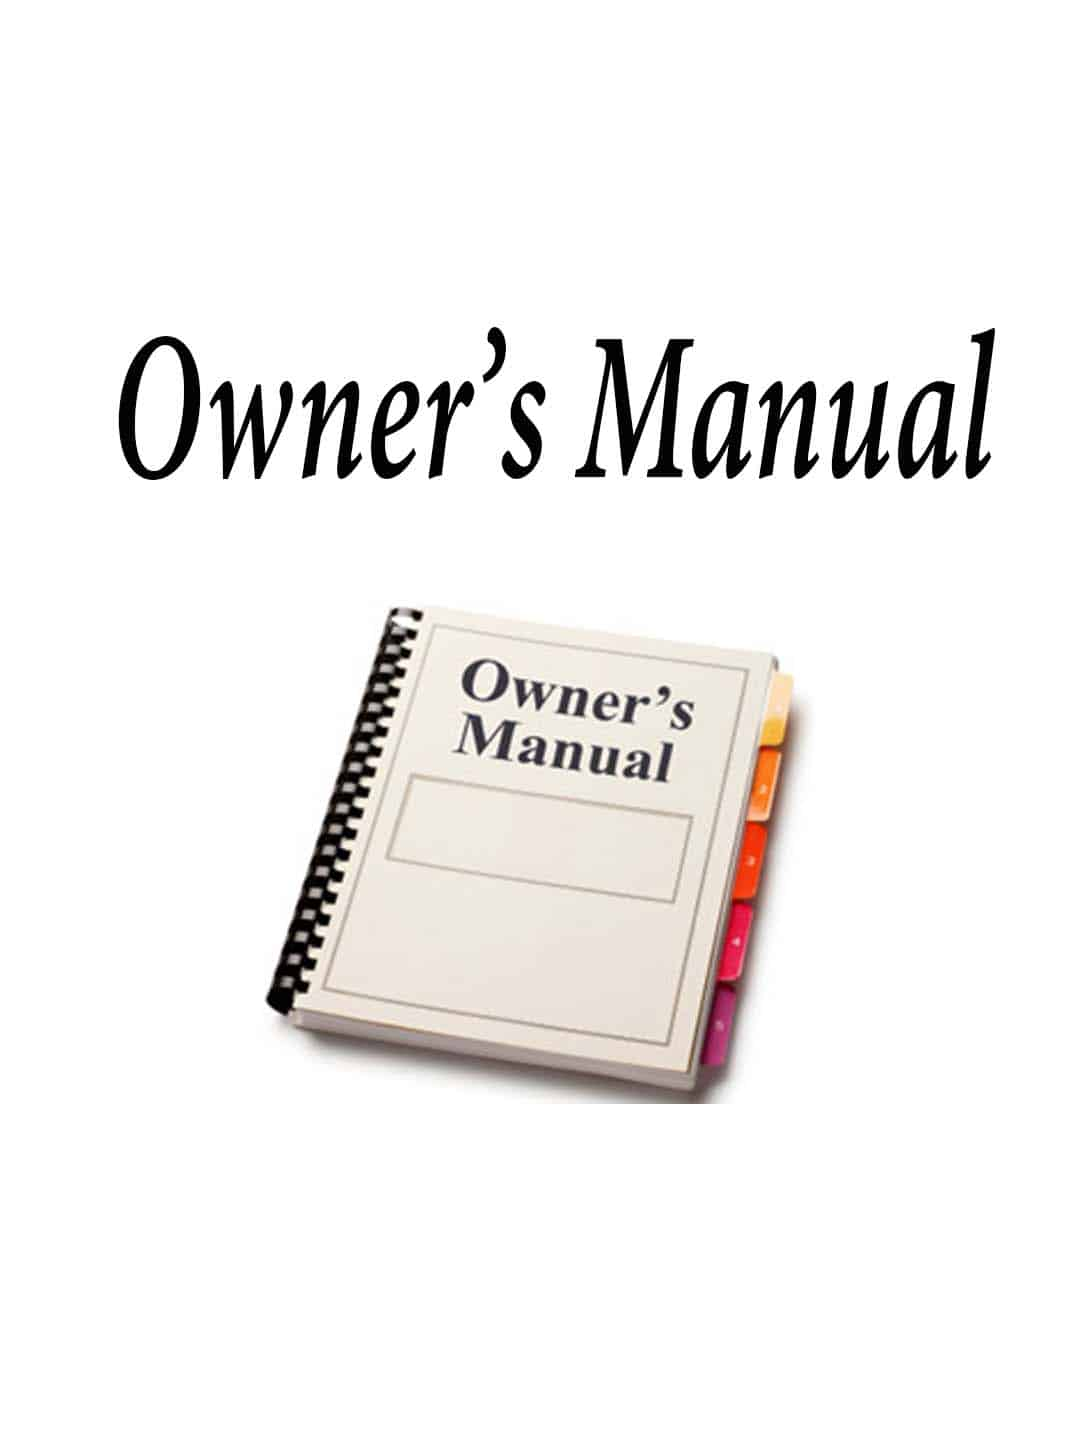 OM75800 - Midland Owners Manual For 75800 Radio